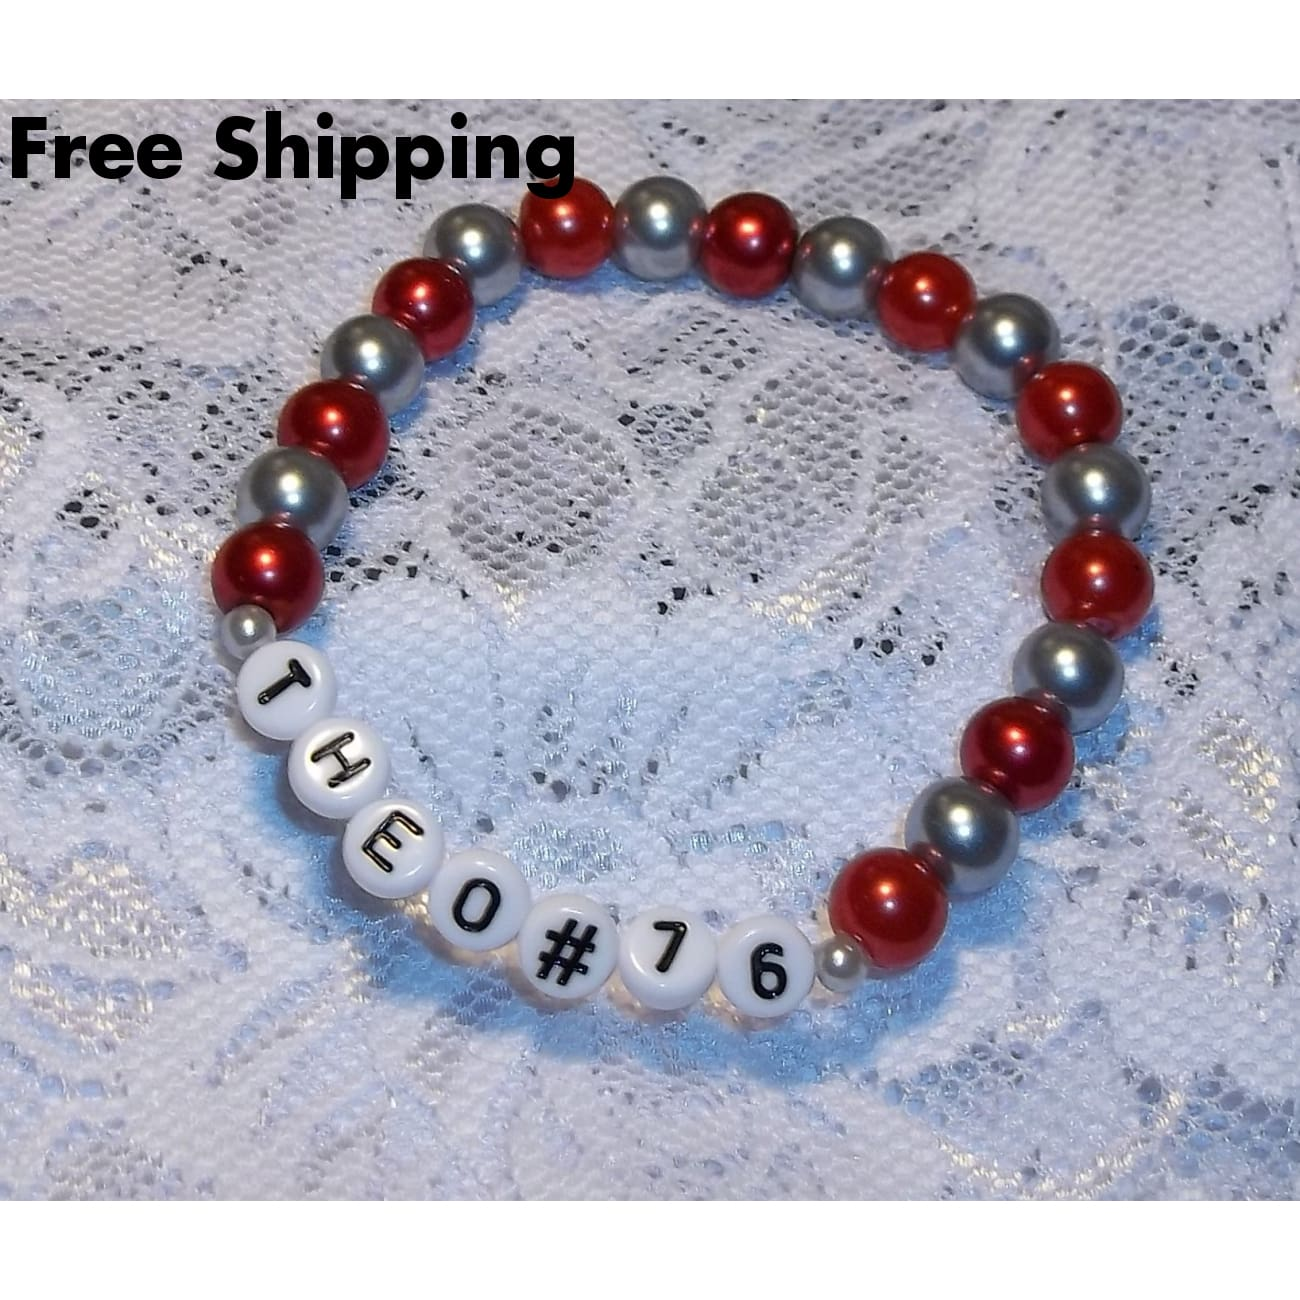 Personalized Sports Team Mom Artisan Crafted Stretch Bracelet (Made To Order Only) - New Arrival